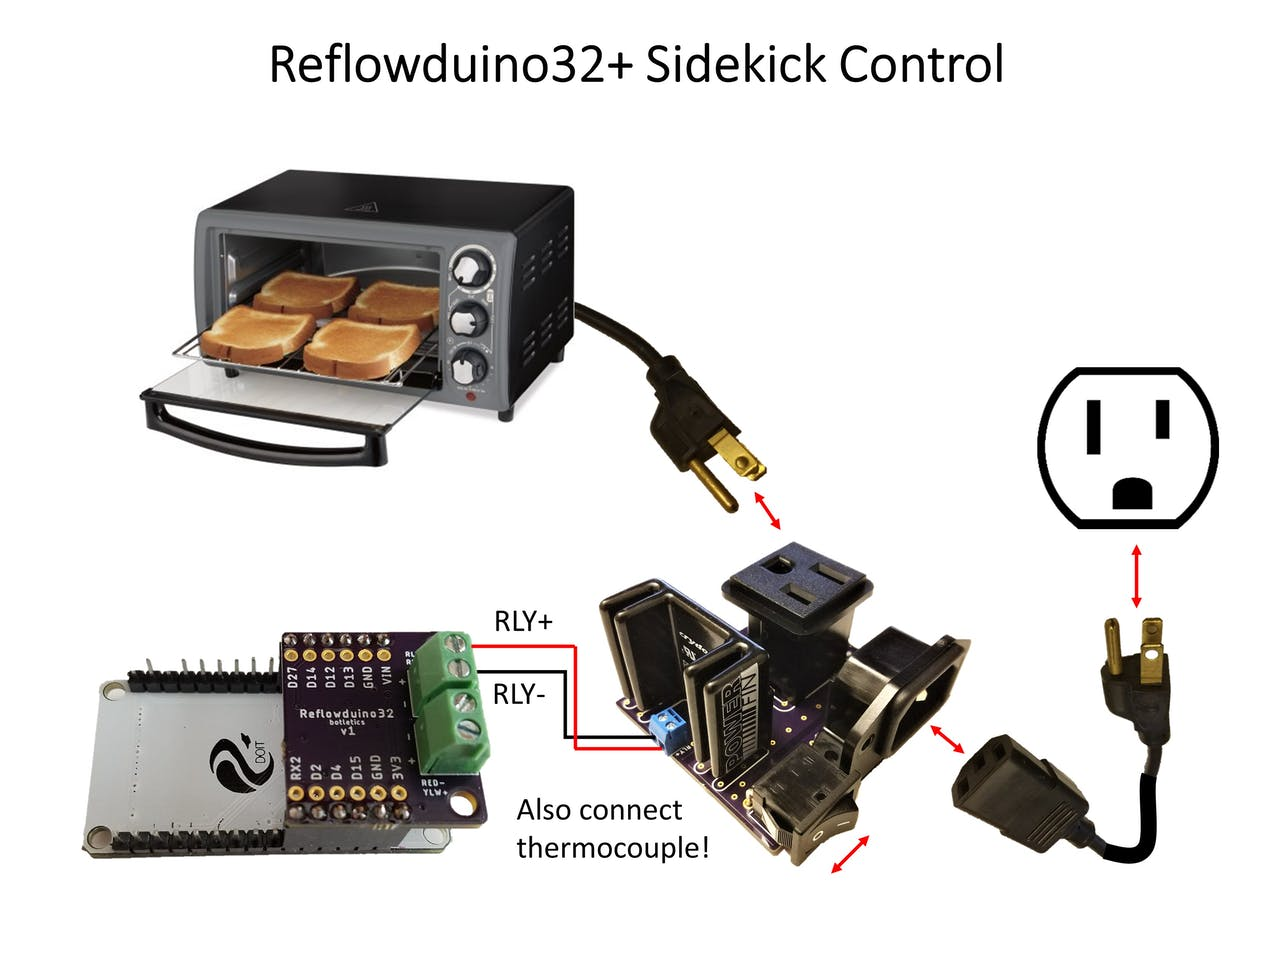 Diy Reflow Oven With Reflowduino How To Wire An Electric Stove Outlet Doityourselfcom Community